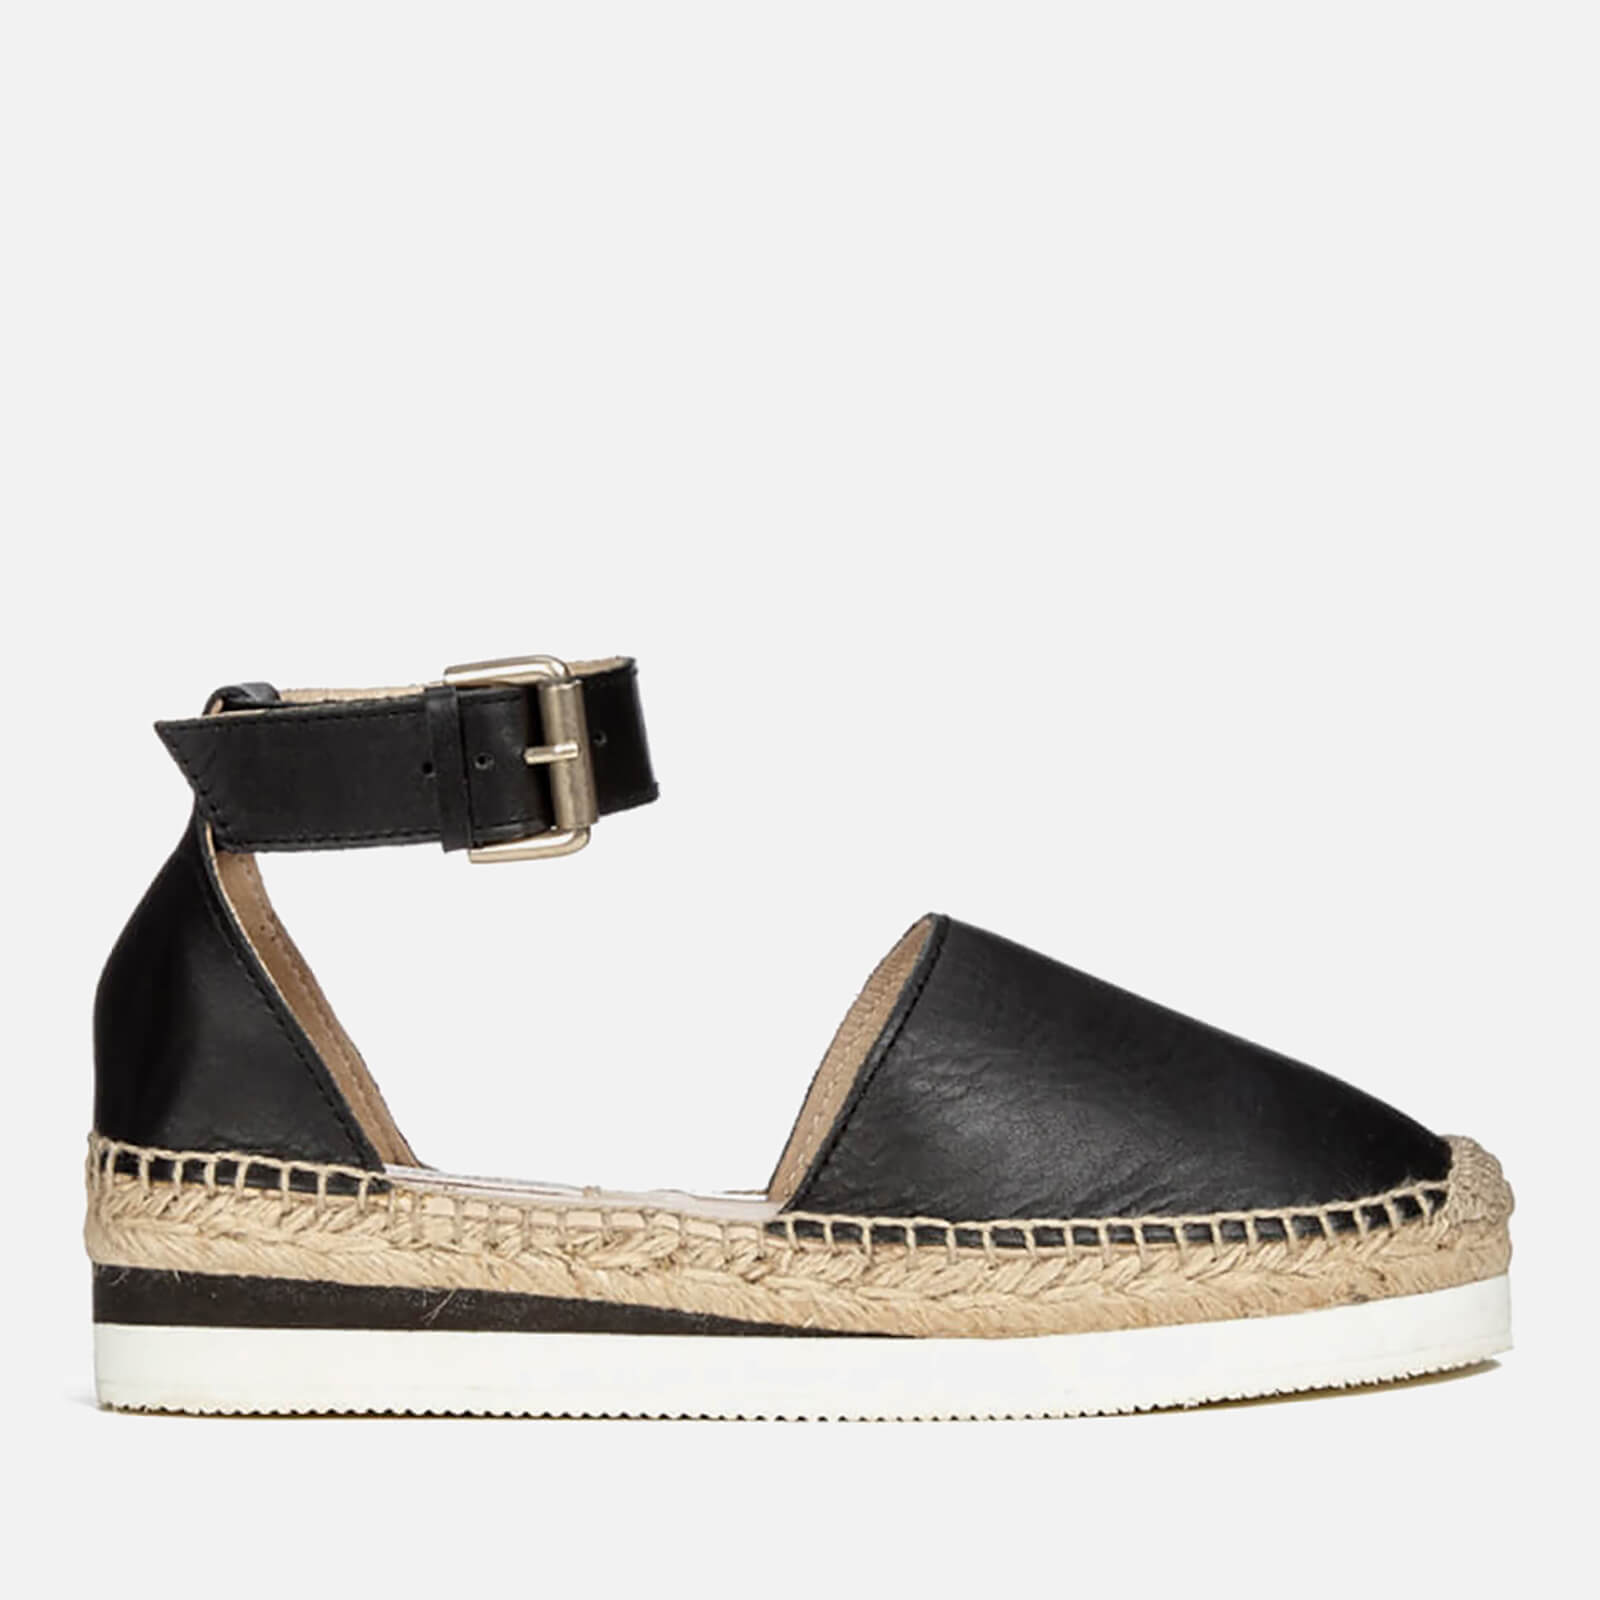 531e936ae9 See By Chloé Women's Leather Espadrille Flat Sandals - Black - Free UK  Delivery over £50